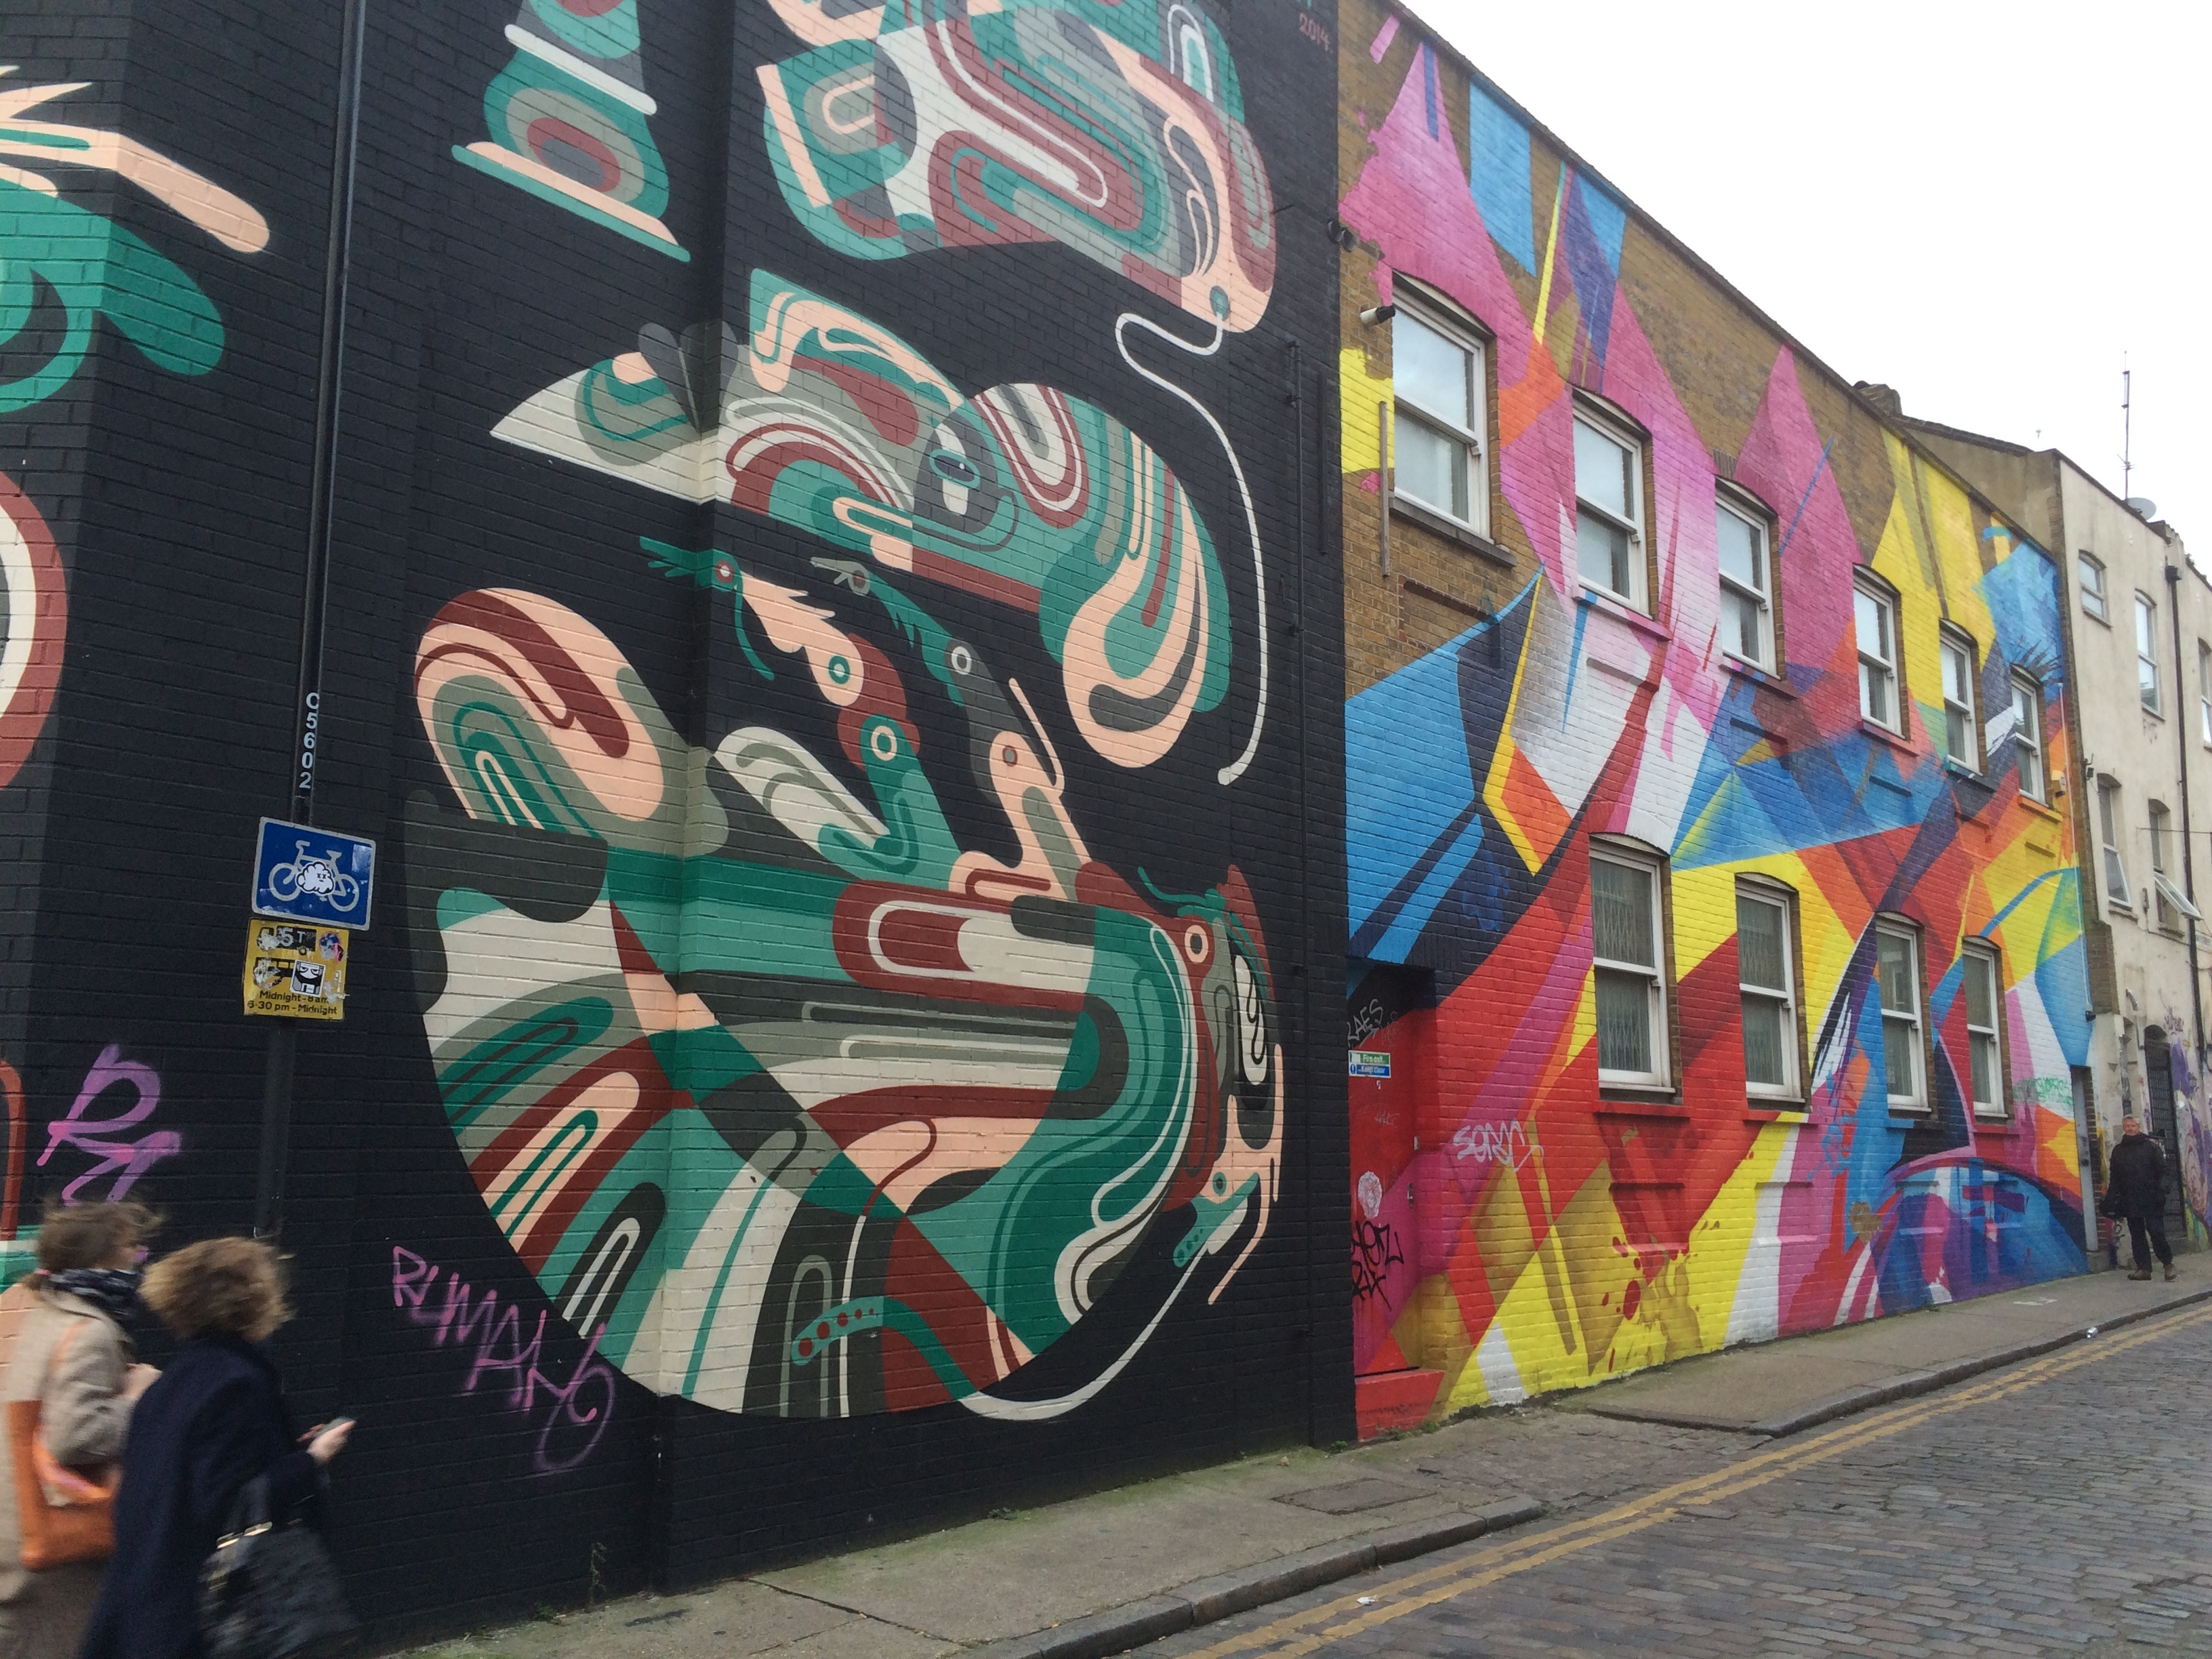 Graffiti painted on the sides of buildings in East London.